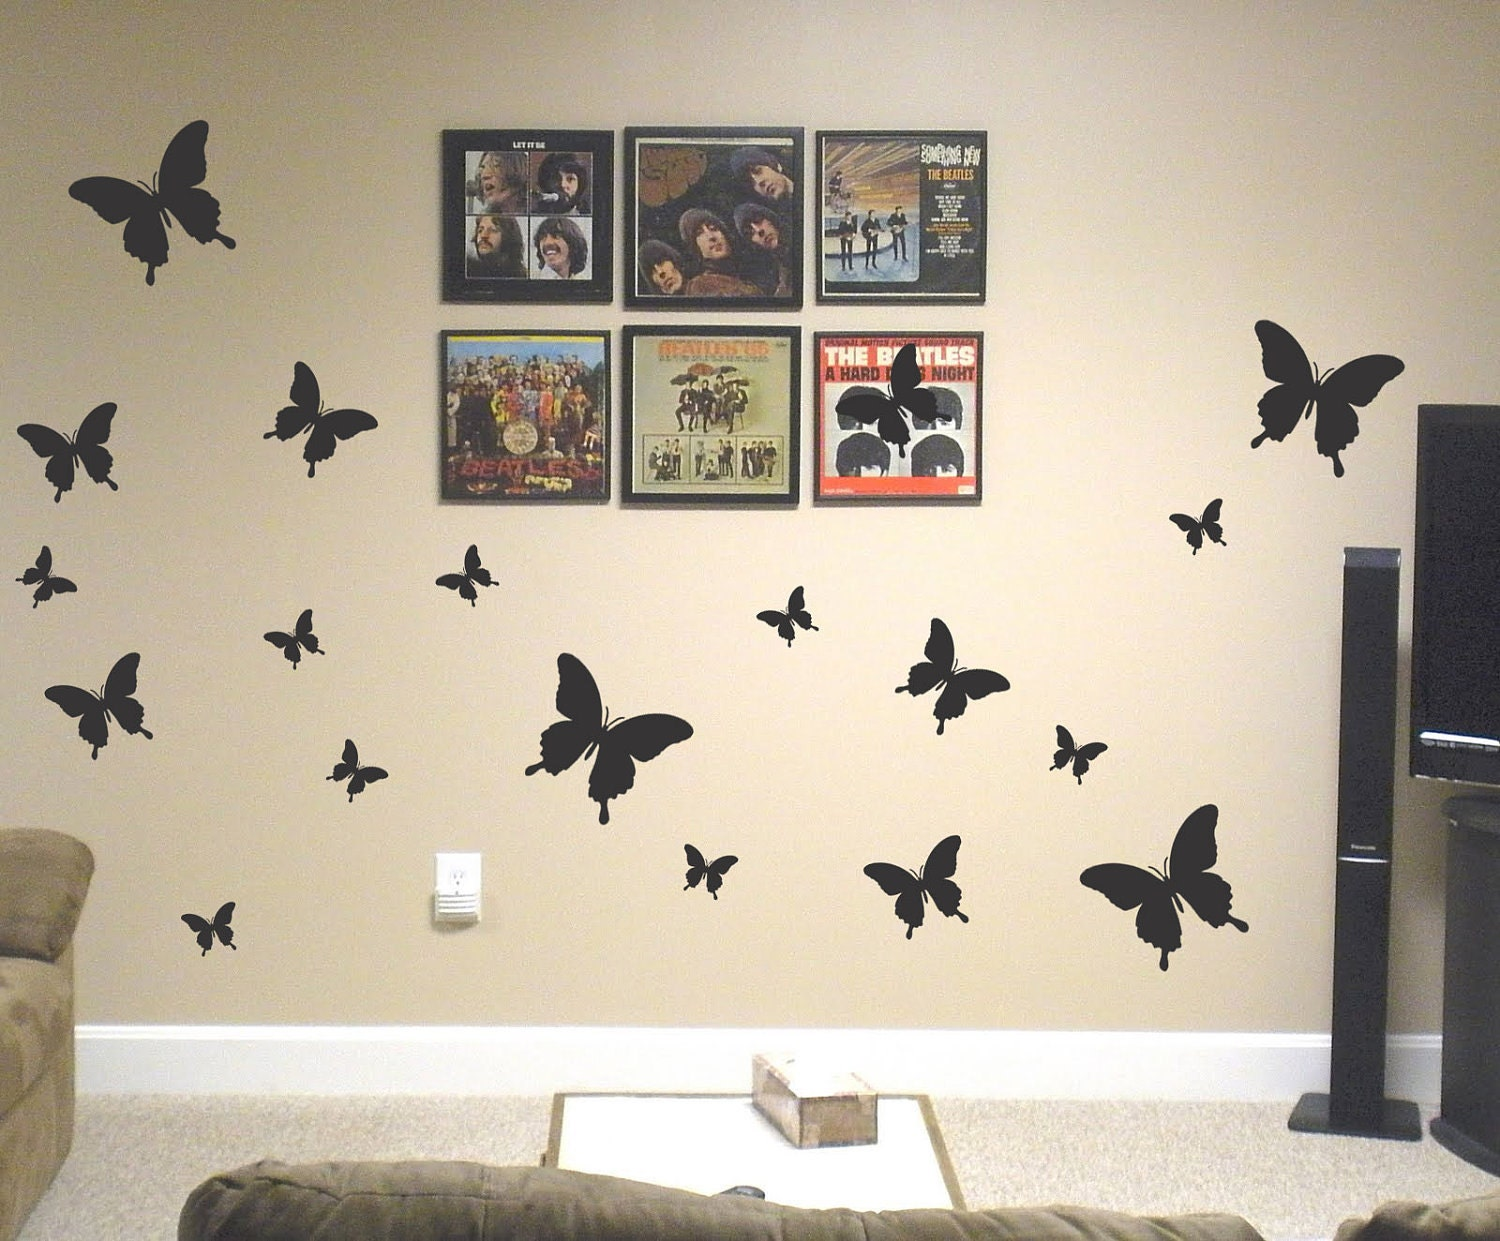 19 removable butterflies vinyl wall art decals bedroom